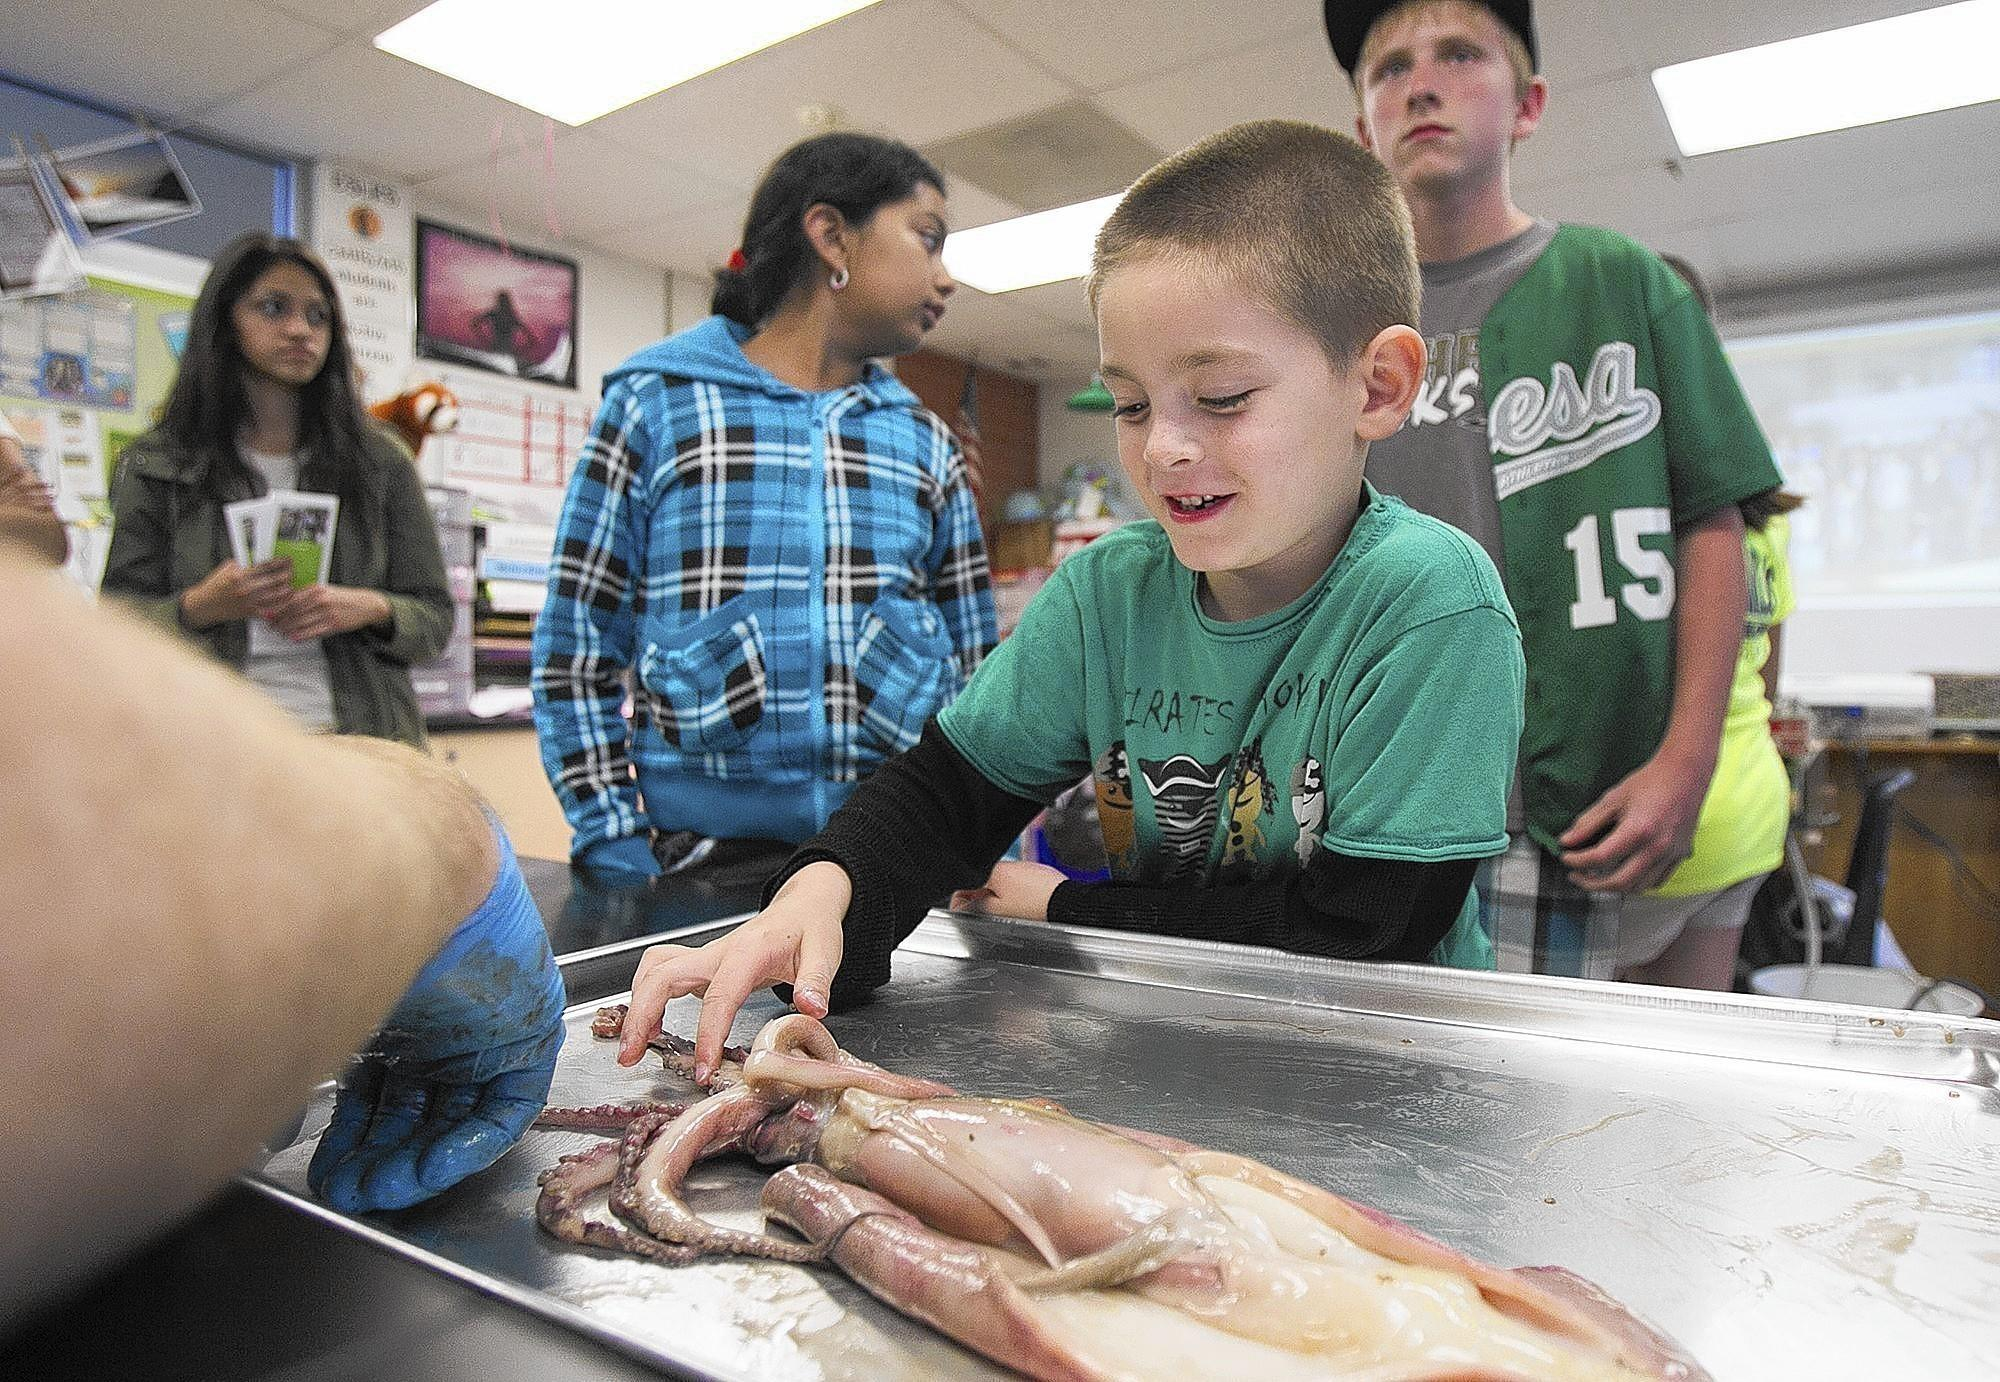 Michael Fink, left, an environmental field studies and life science teacher at Costa Mesa High School, shows Cash Gorke, 5, a kindergarten from Paularino Elementary School, a squid during a science night at Costa Mesa High School on Thursday. (Scott Smeltzer, Daily Pilot)